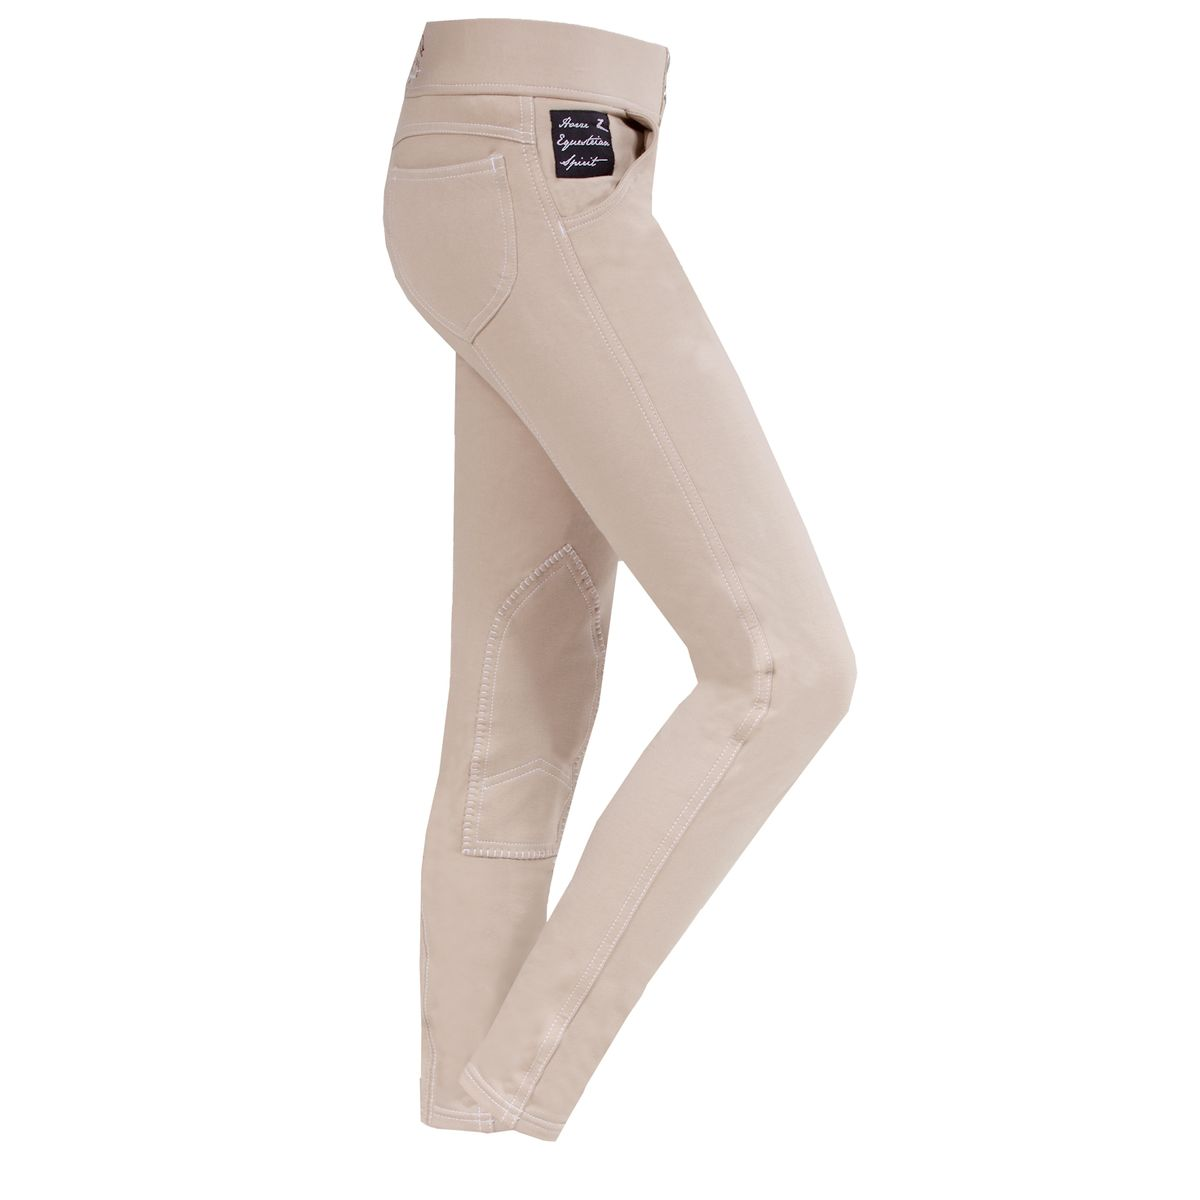 HorZe Paige Childrens Pull-On Denim Look Breeches